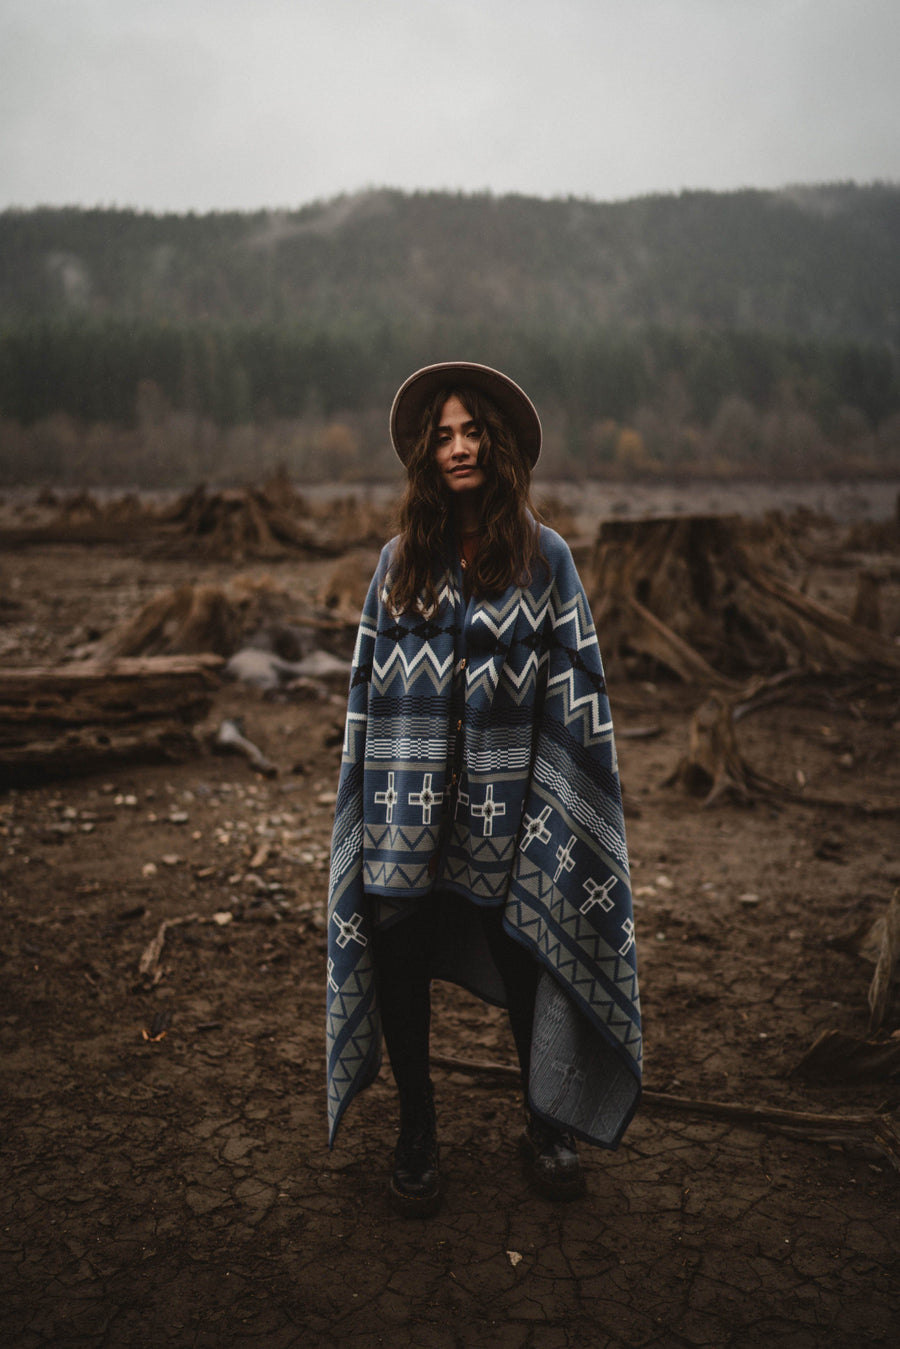 Explorers Wraparound Blanket // Junapera Blue Edition - Wondery, A Parks Apparel Brand